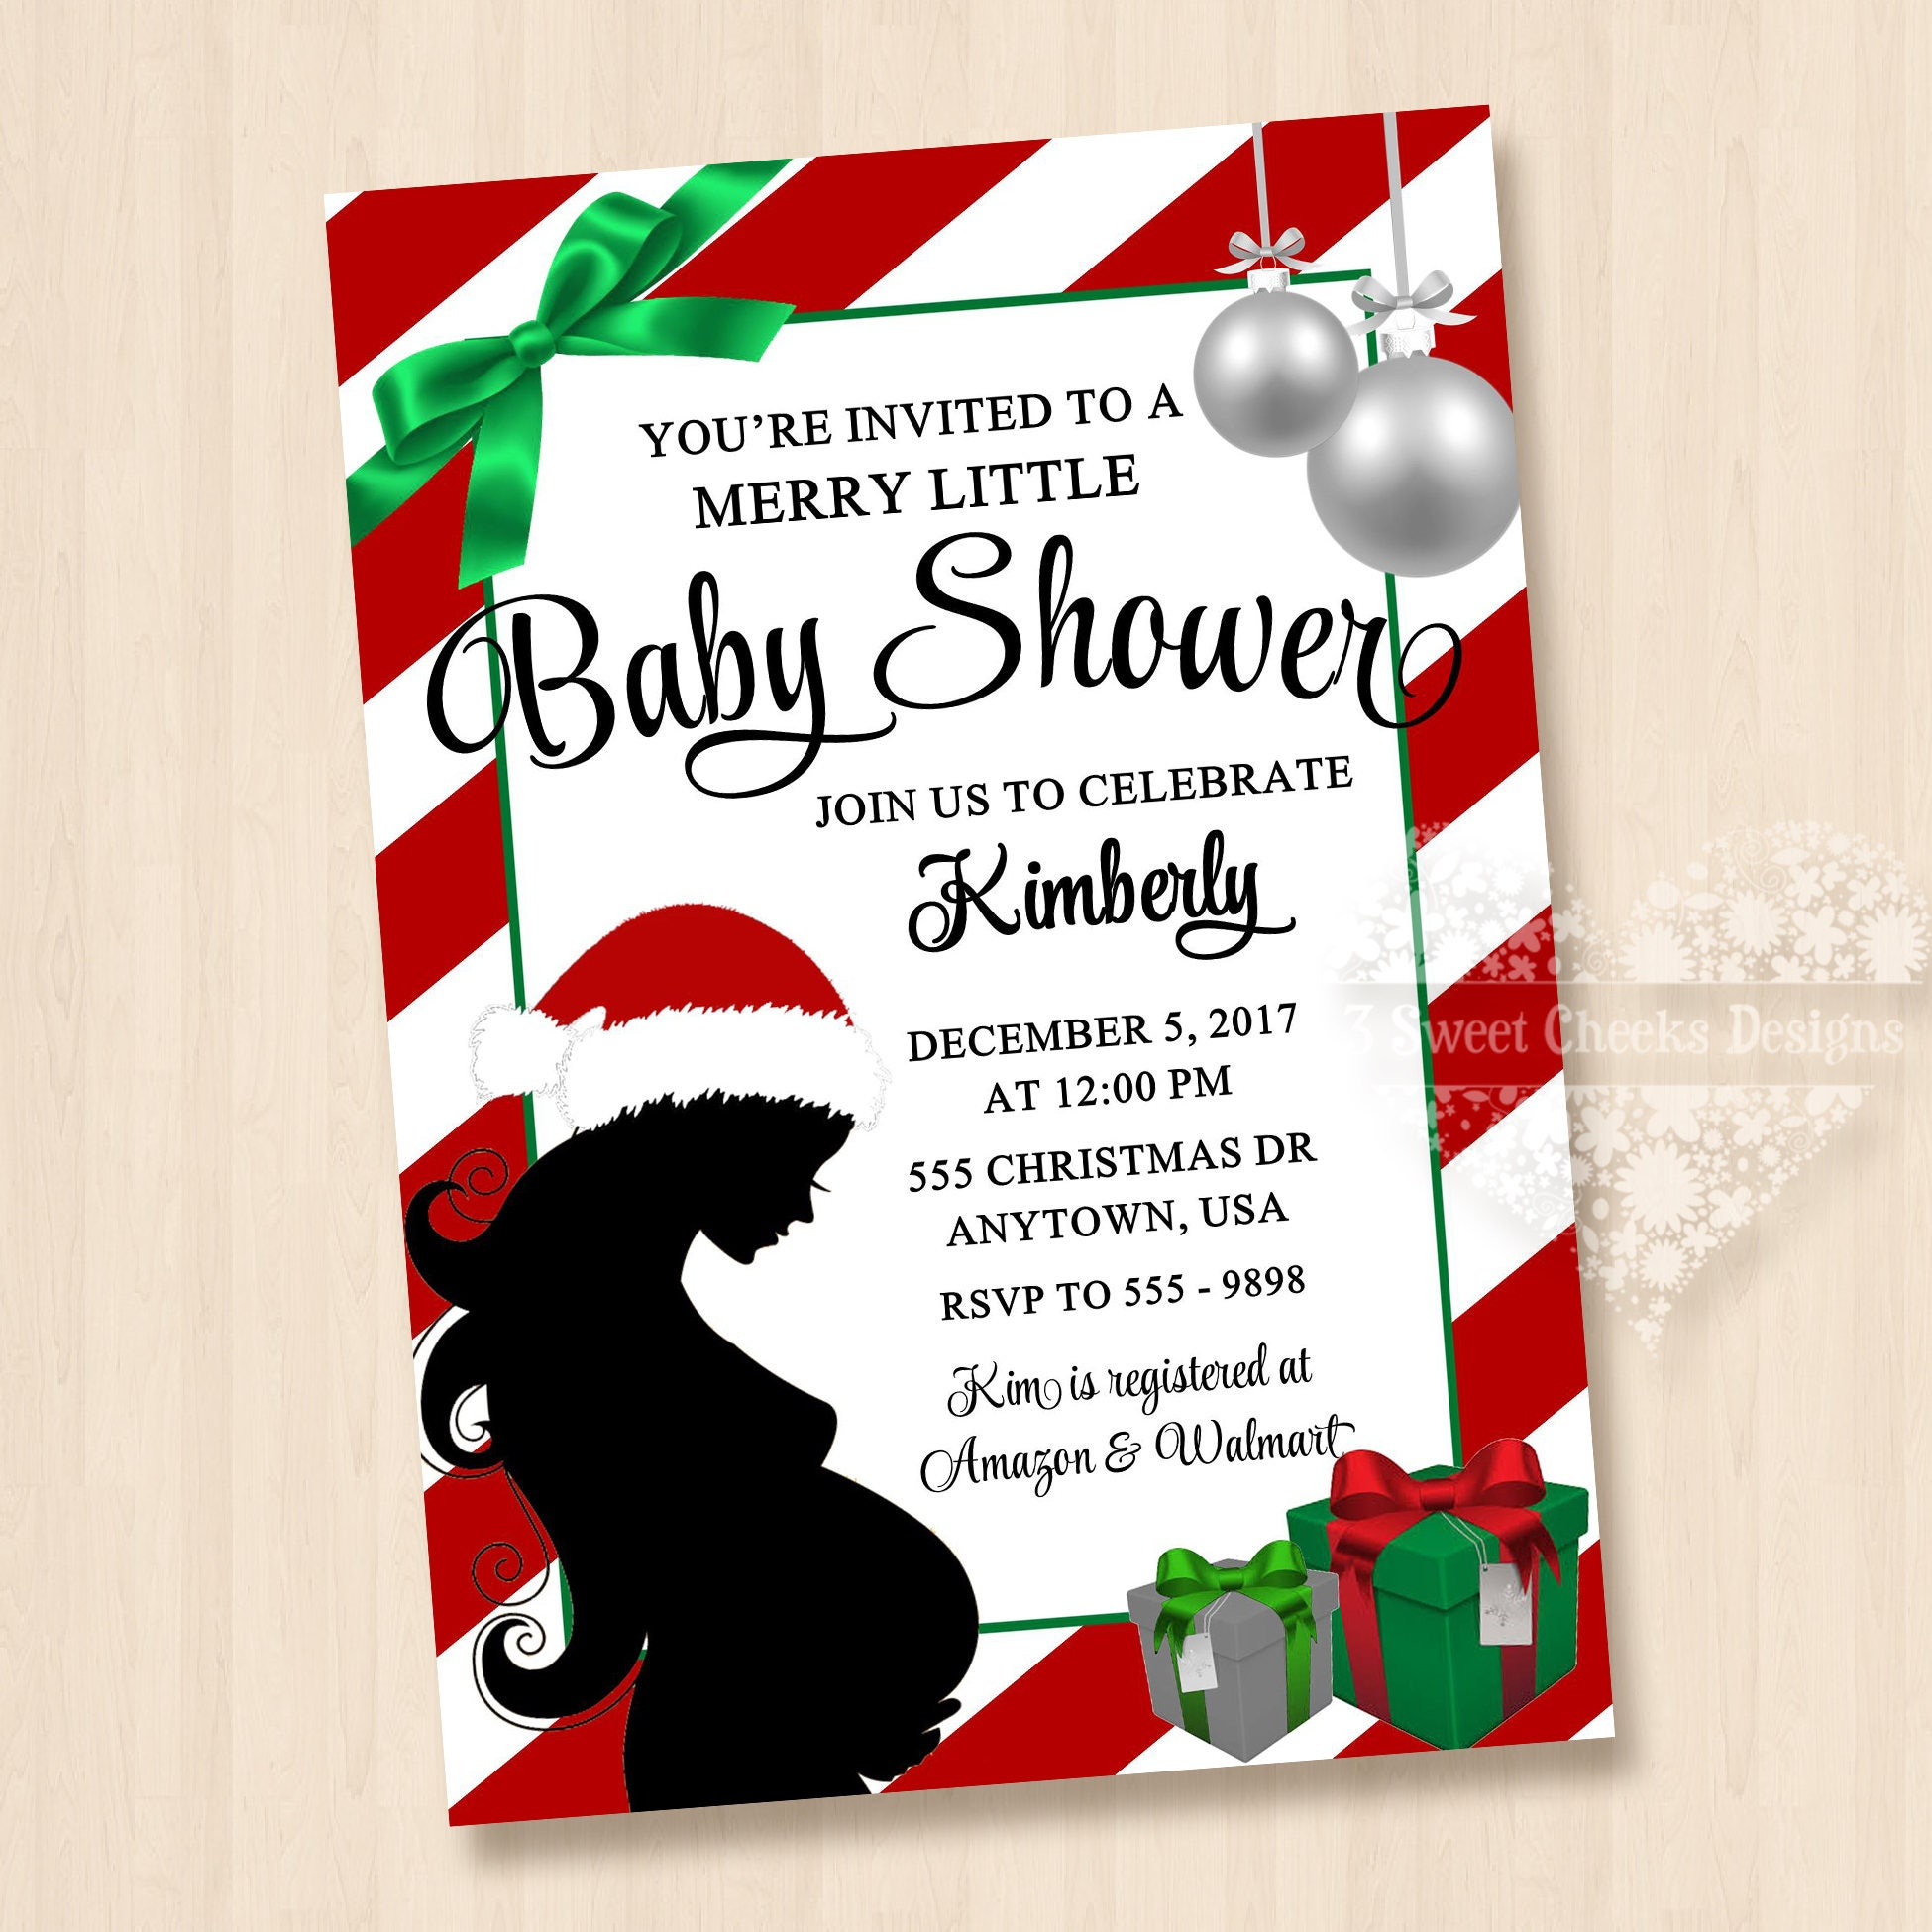 Christmas Baby Shower Invitation Digital Jpeg File Cute Simply | Etsy